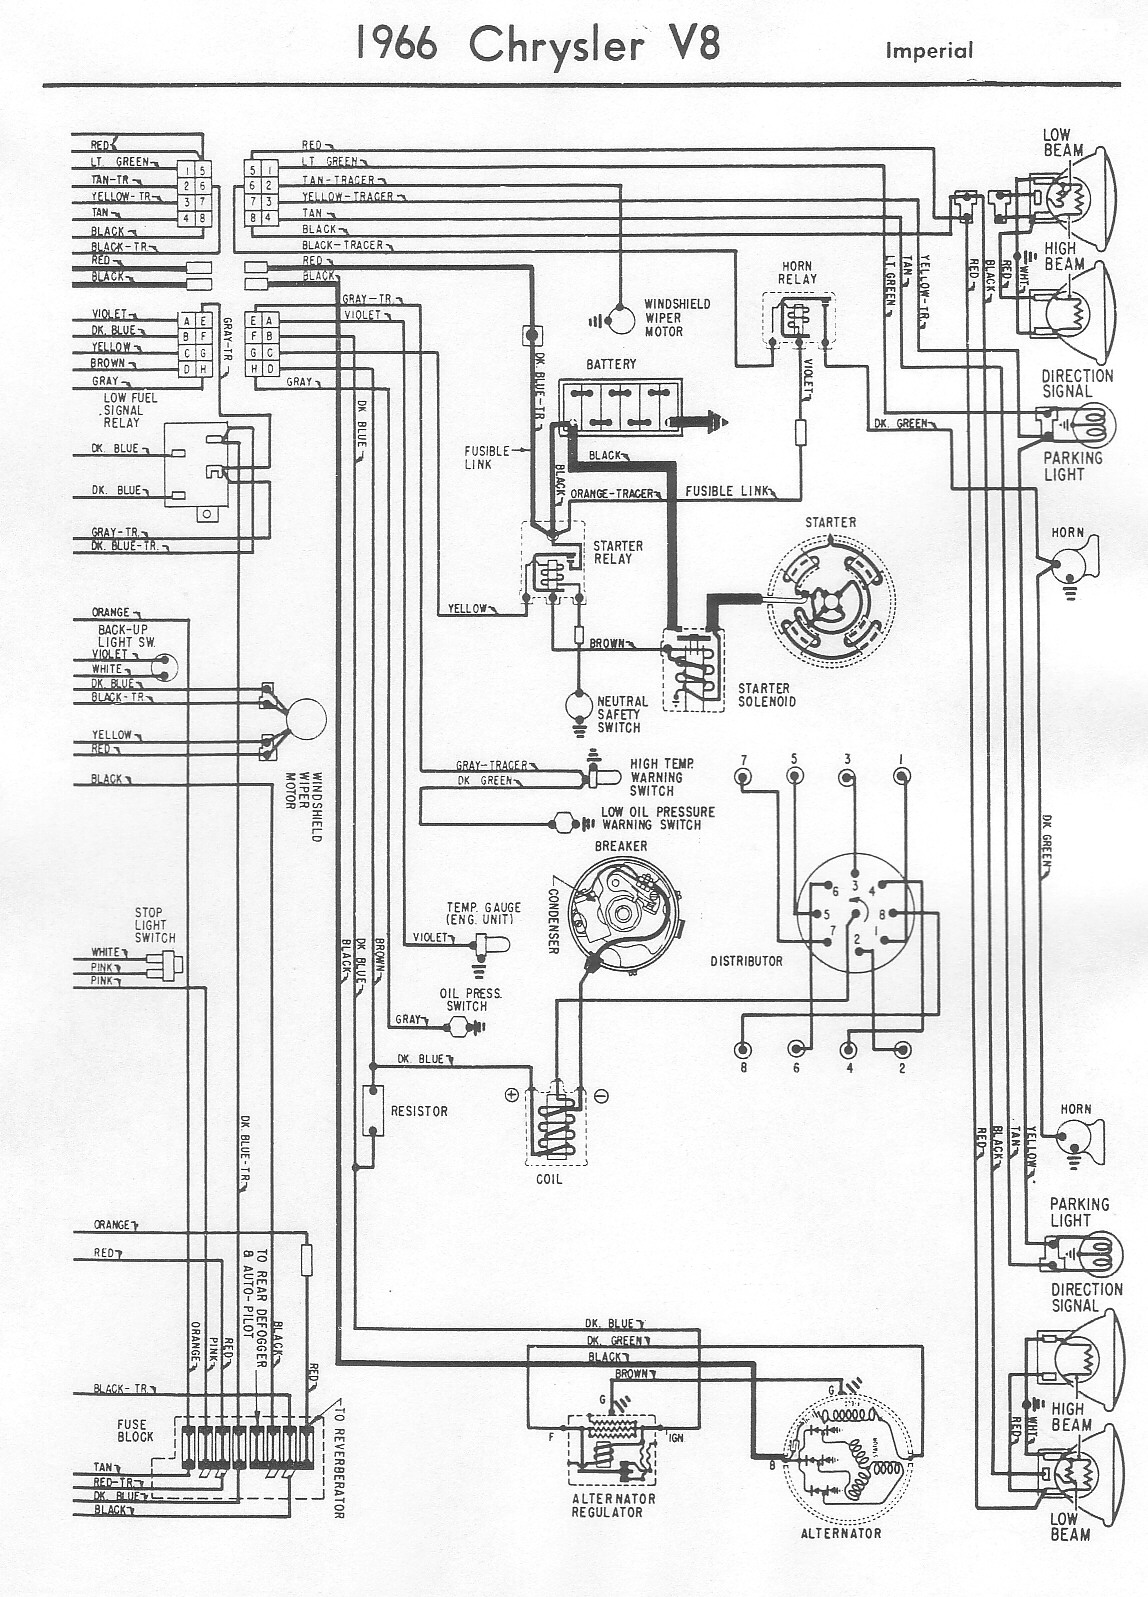 Road Runner Wiring Diagram Free Download Schematic, Road